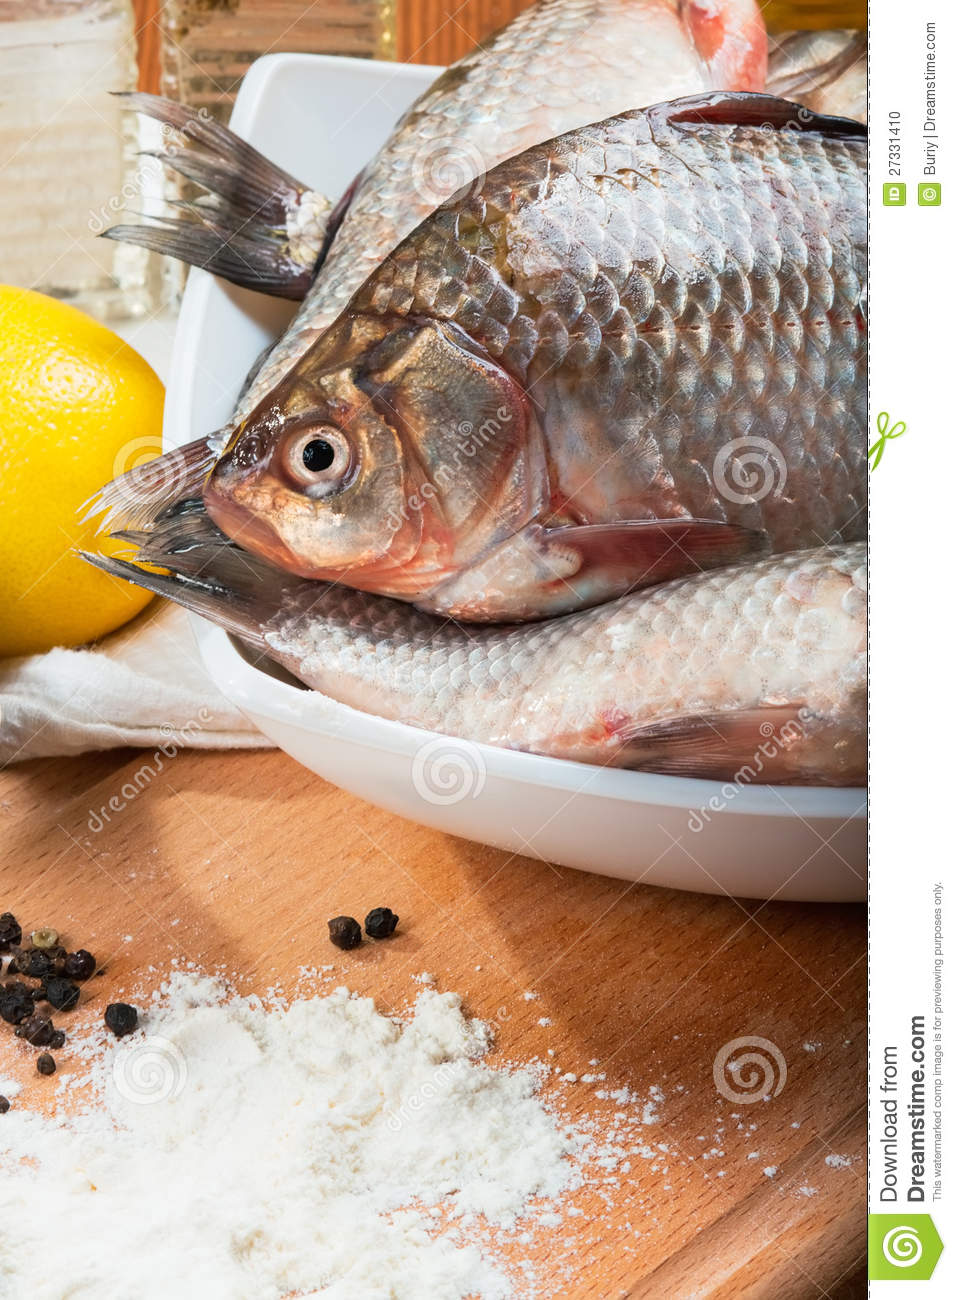 salted fish thesis Biochemically, fish sauce is salt-soluble protein in the form of amino acids and peptides it is developed microbiologically with halophilic bacteria food reviews international volume 17, 2001 - issue 1 submit an article ms thesis bangkok,.